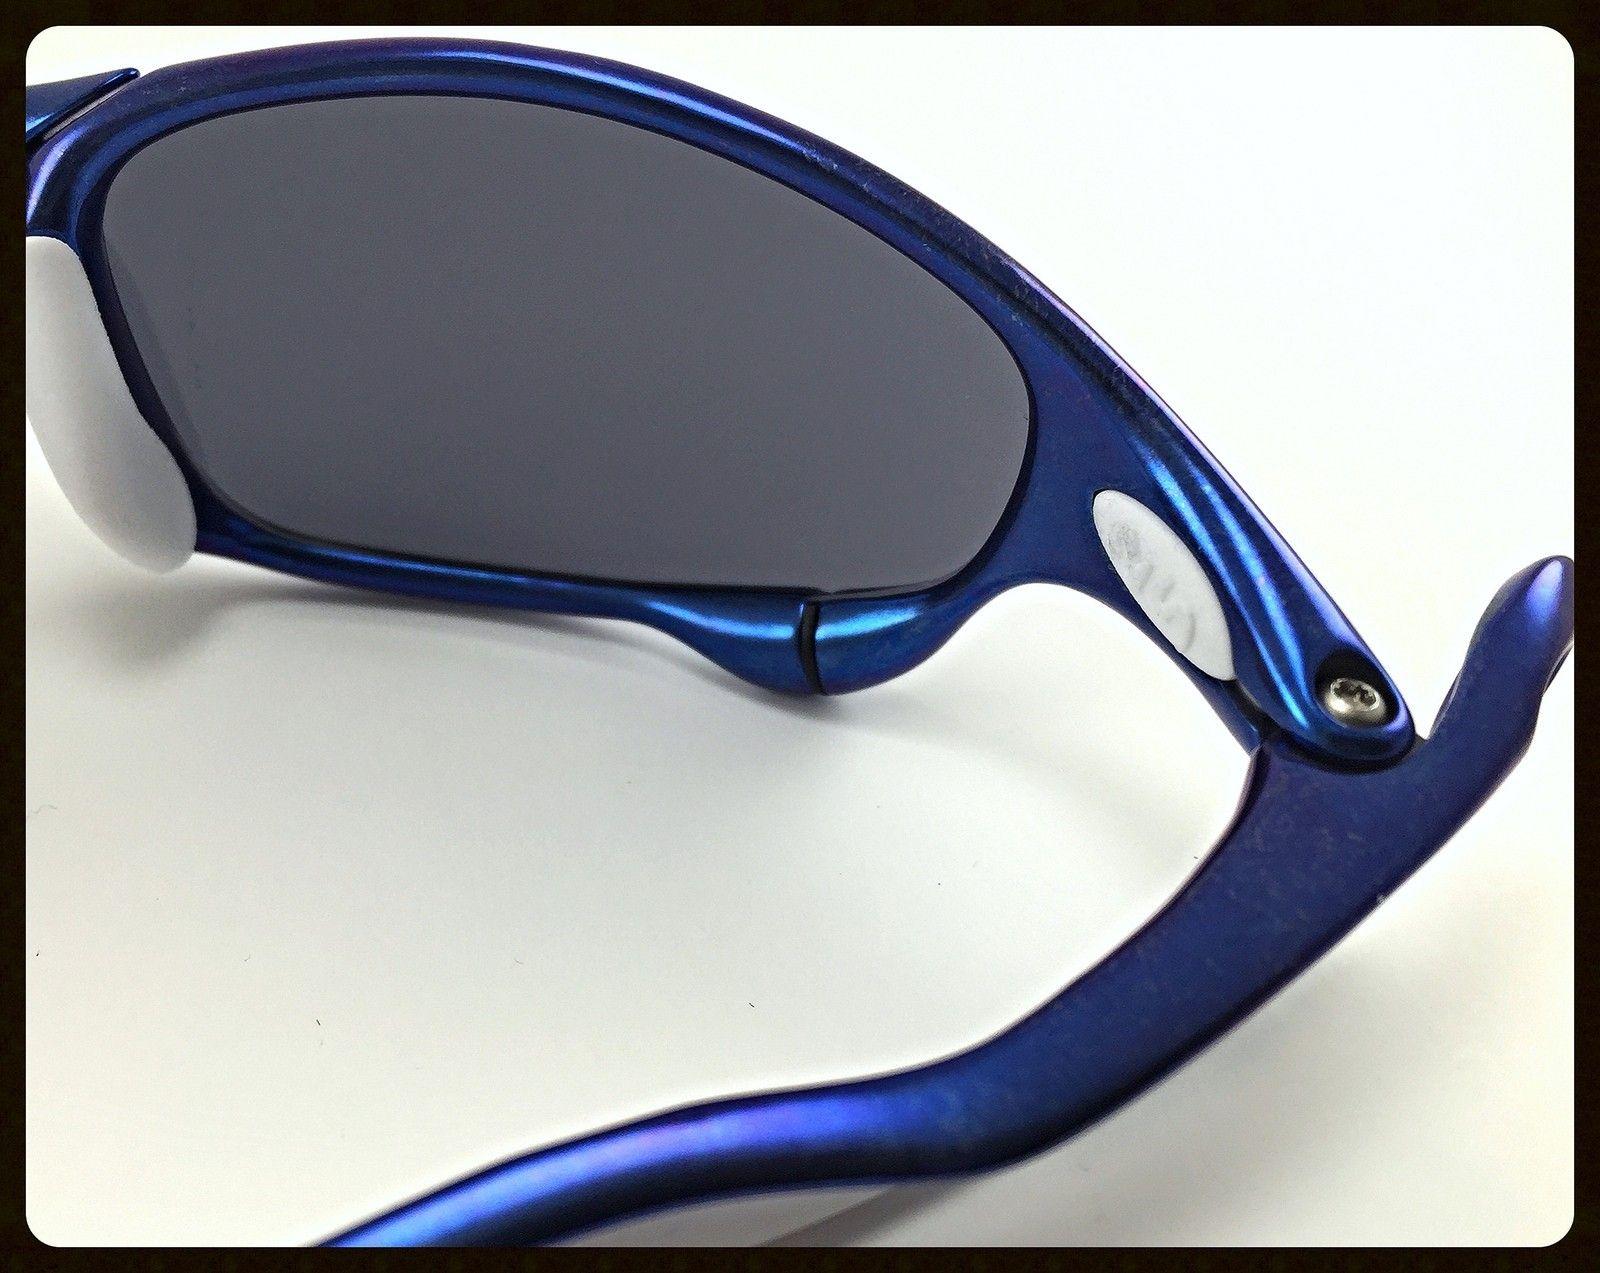 Blue Anodized Polished Juliet - Ichiro Style - 51 Polished Anodized Blue Juliet with OO Blue Ichiro Lenses and White OEM Rubbers-5.jpg